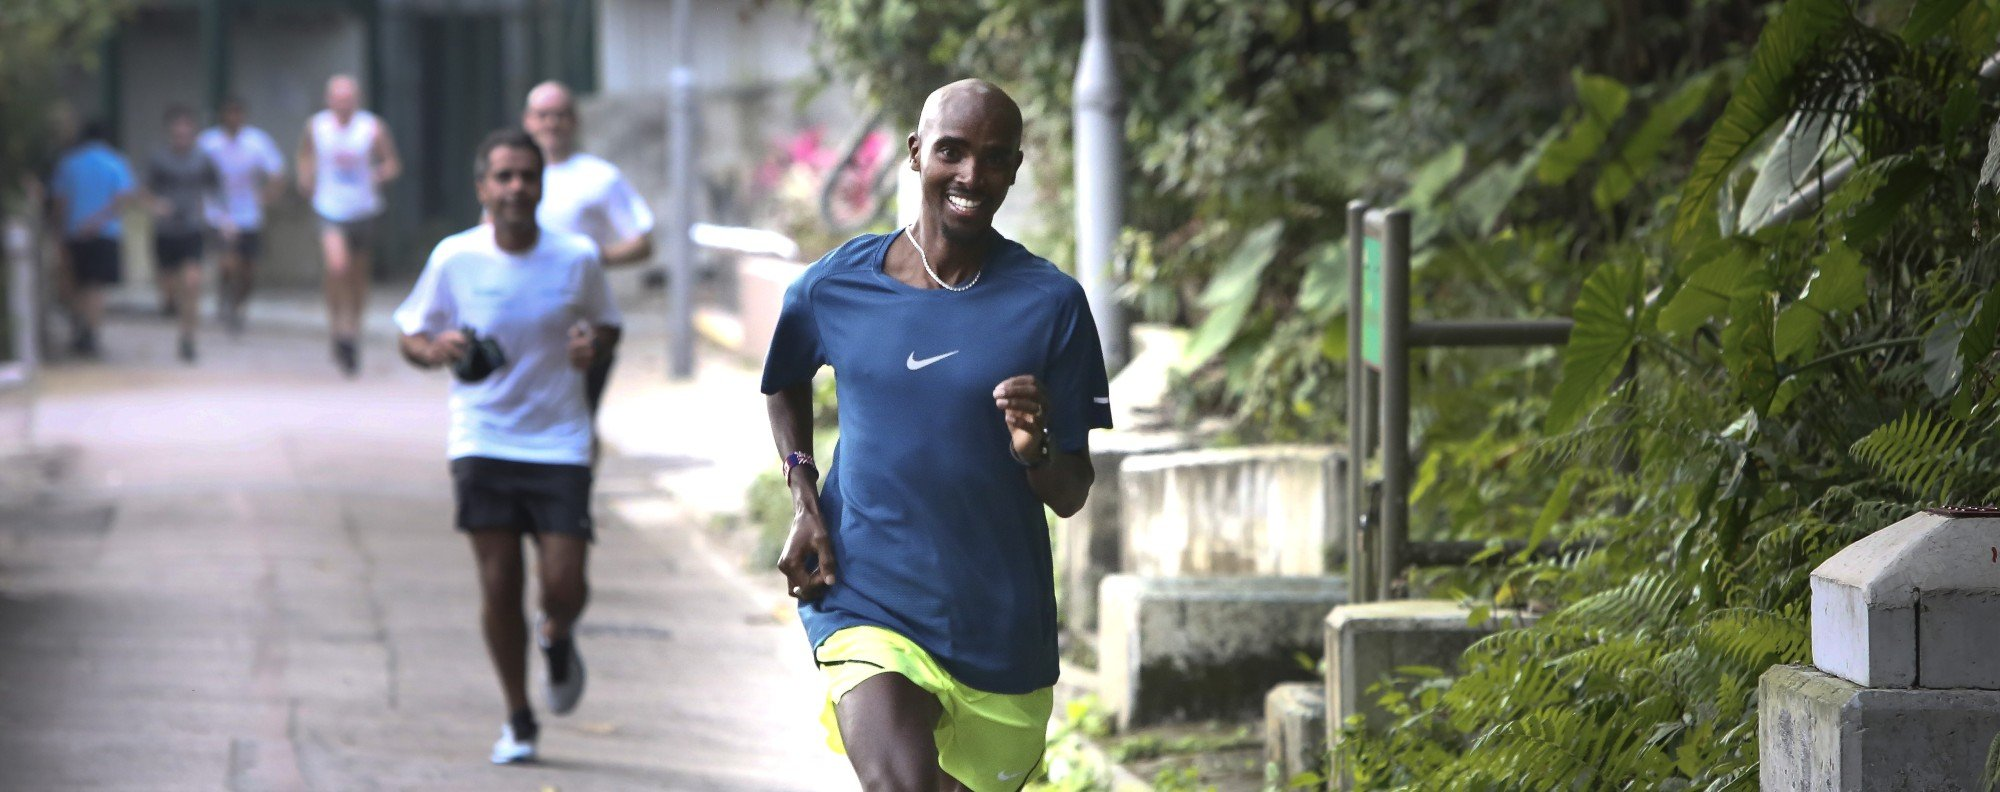 """Sir Mohamed Muktar Jama """"Mo"""" Farah jogs with supporters on Bowen Road in 2017. Bowen Road is a great option to keep training in the heat. Photo: Jonathan Wong"""